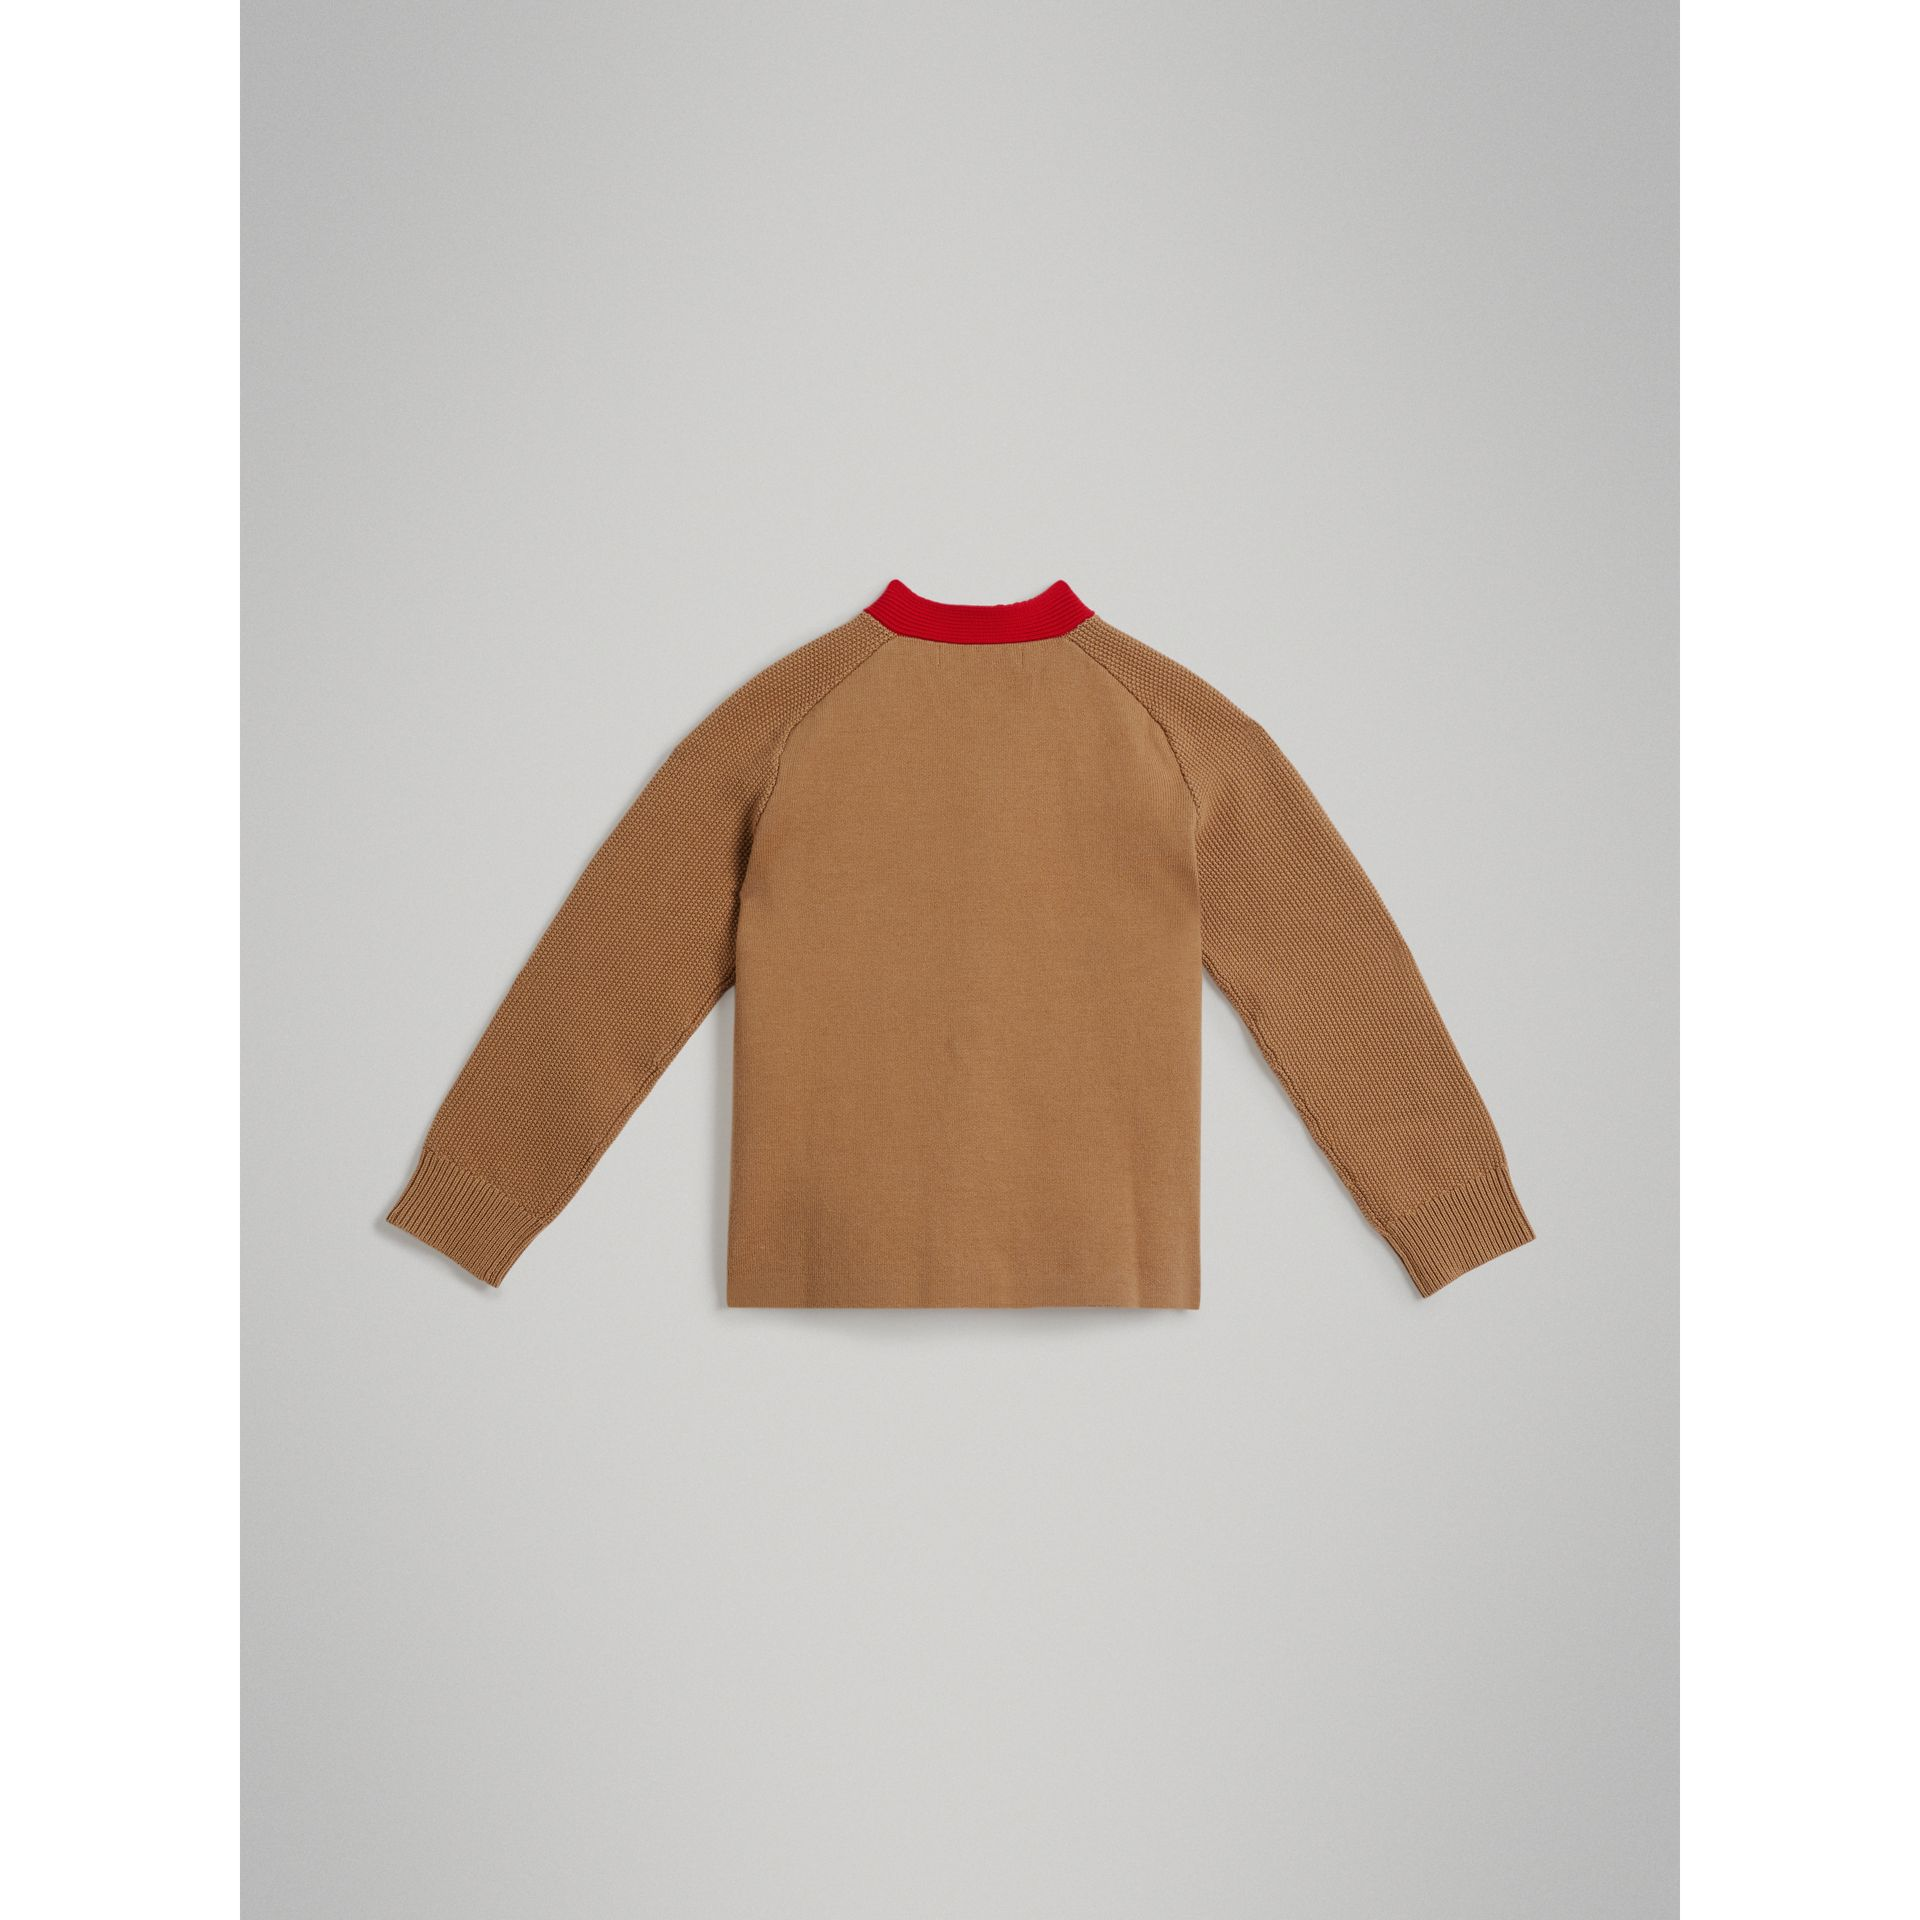 Cardigan en coton bicolore (Camel) | Burberry - photo de la galerie 3